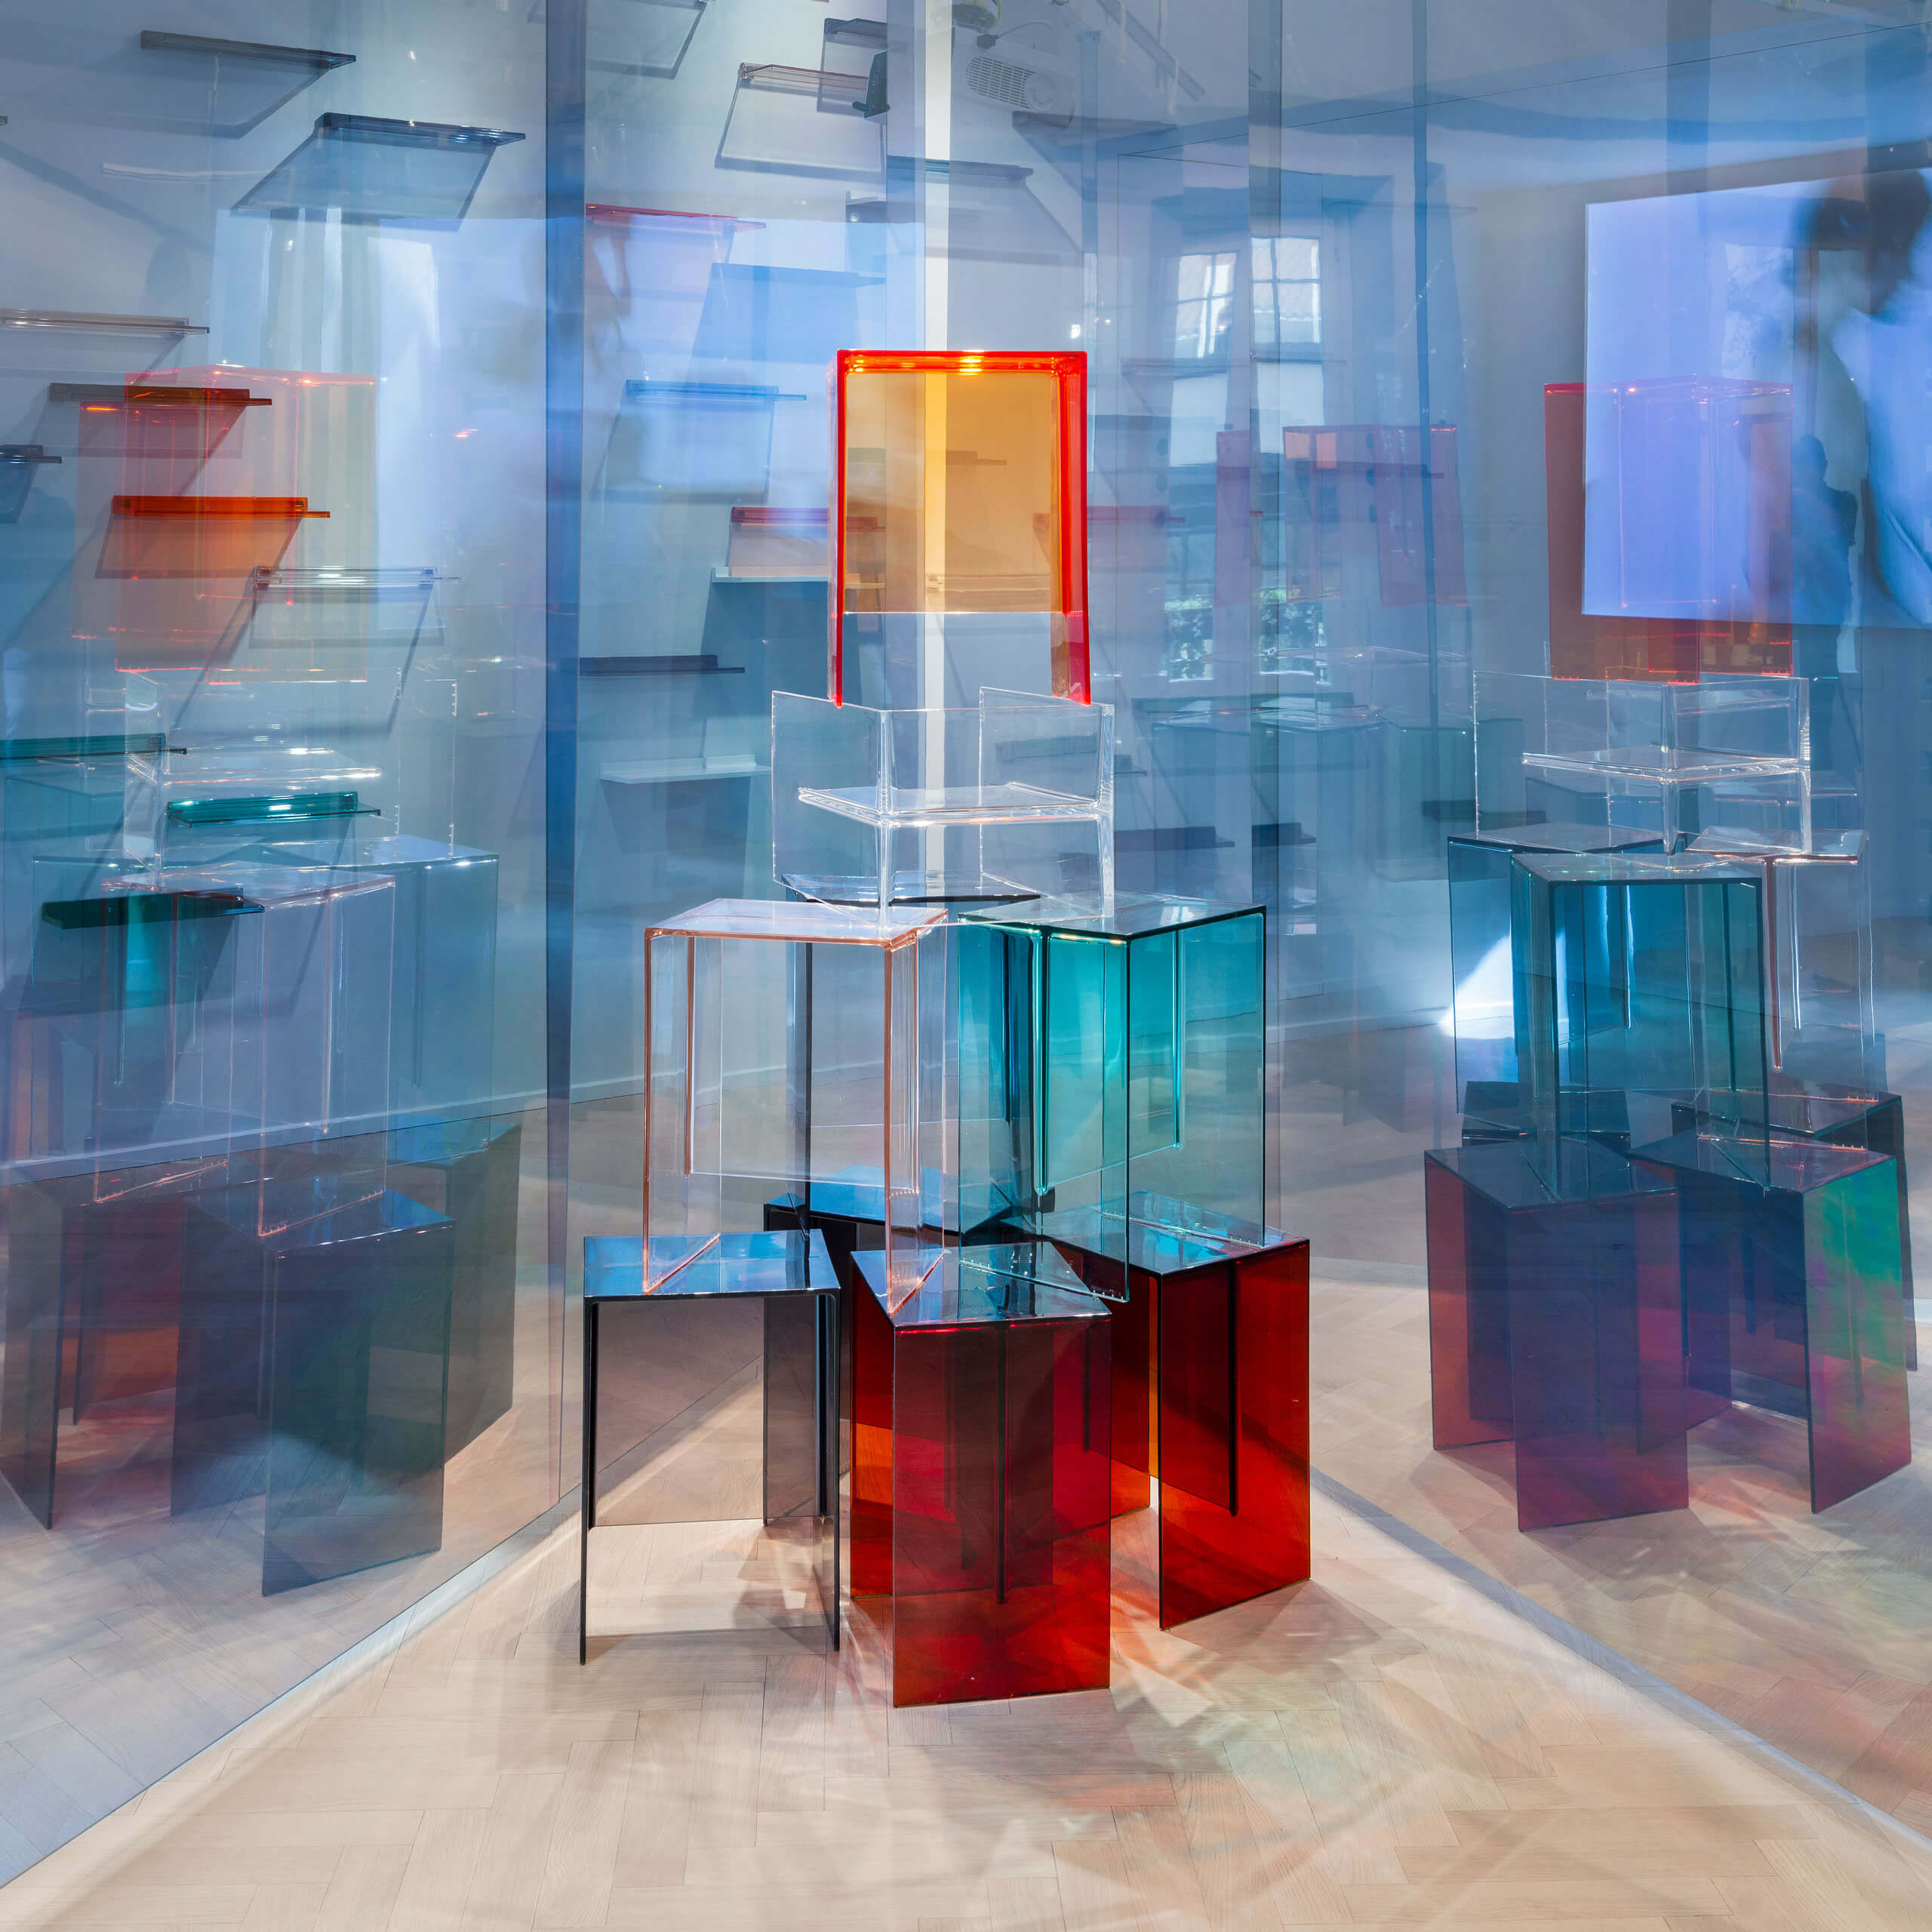 Colored semi-transparent furnitures arranged to sculptures surrounded by transparent walls and mirrors.